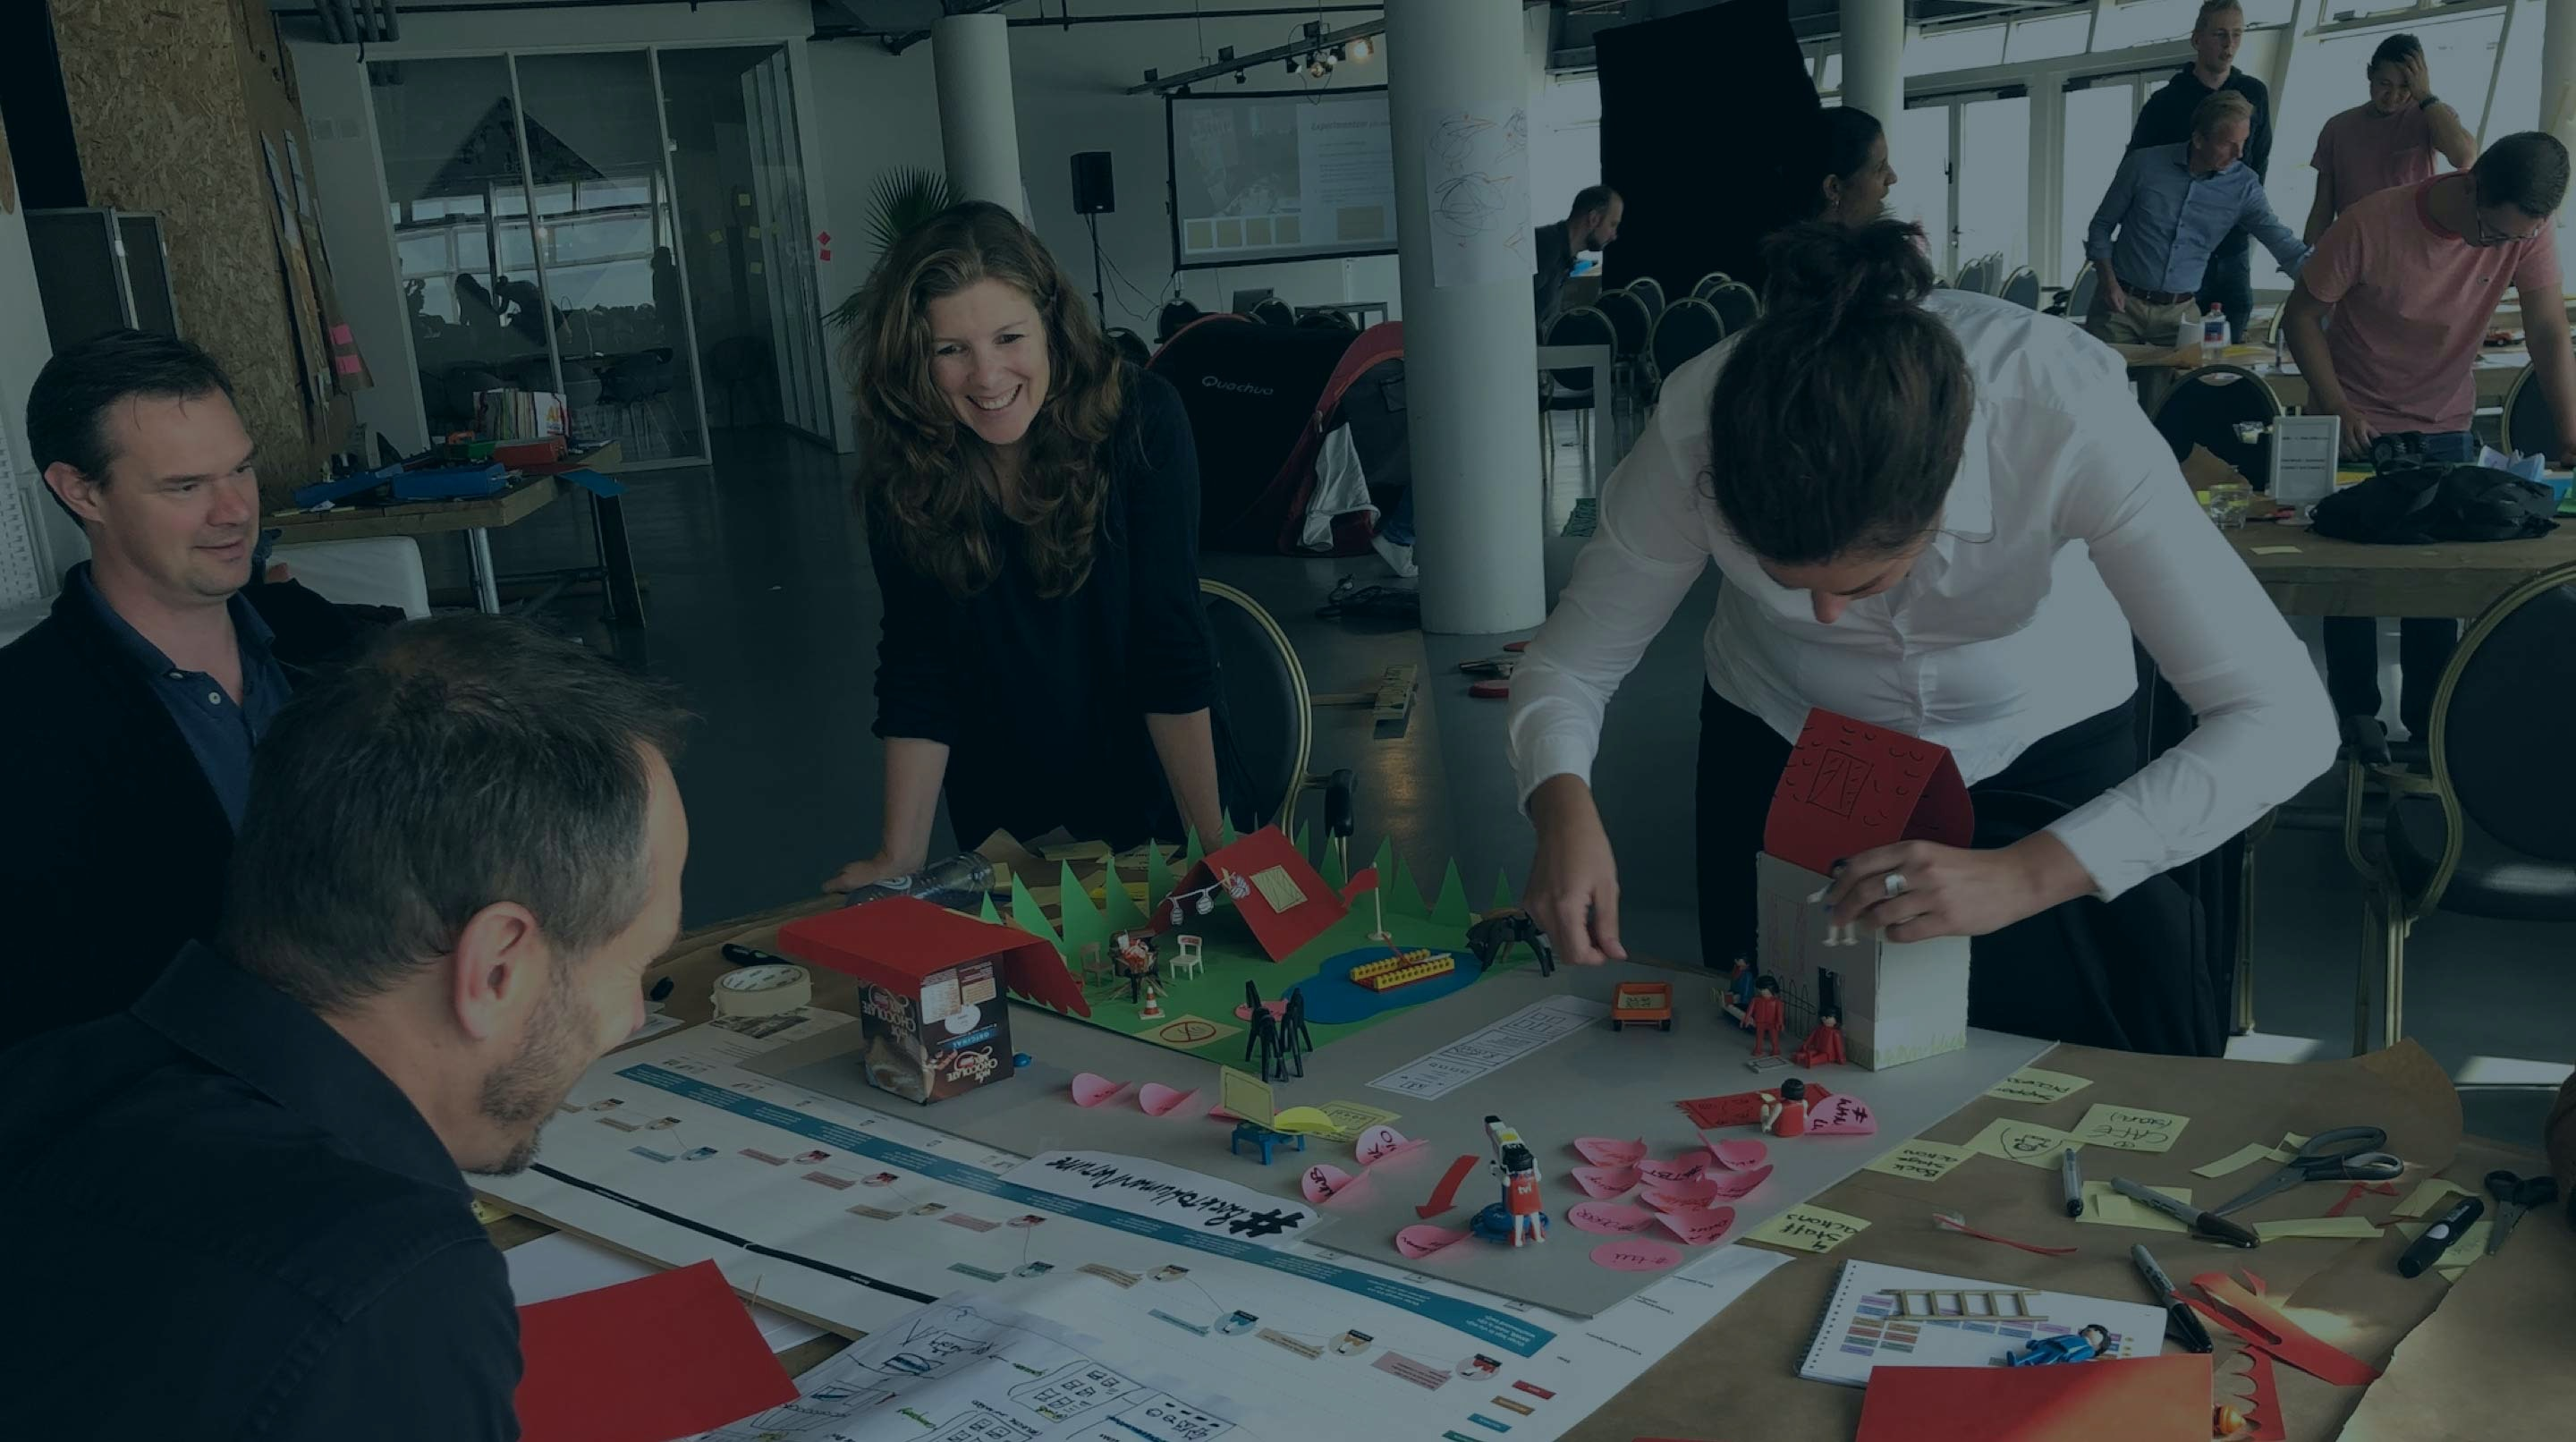 Attendees at a Service Design masterclass, creating a prototype